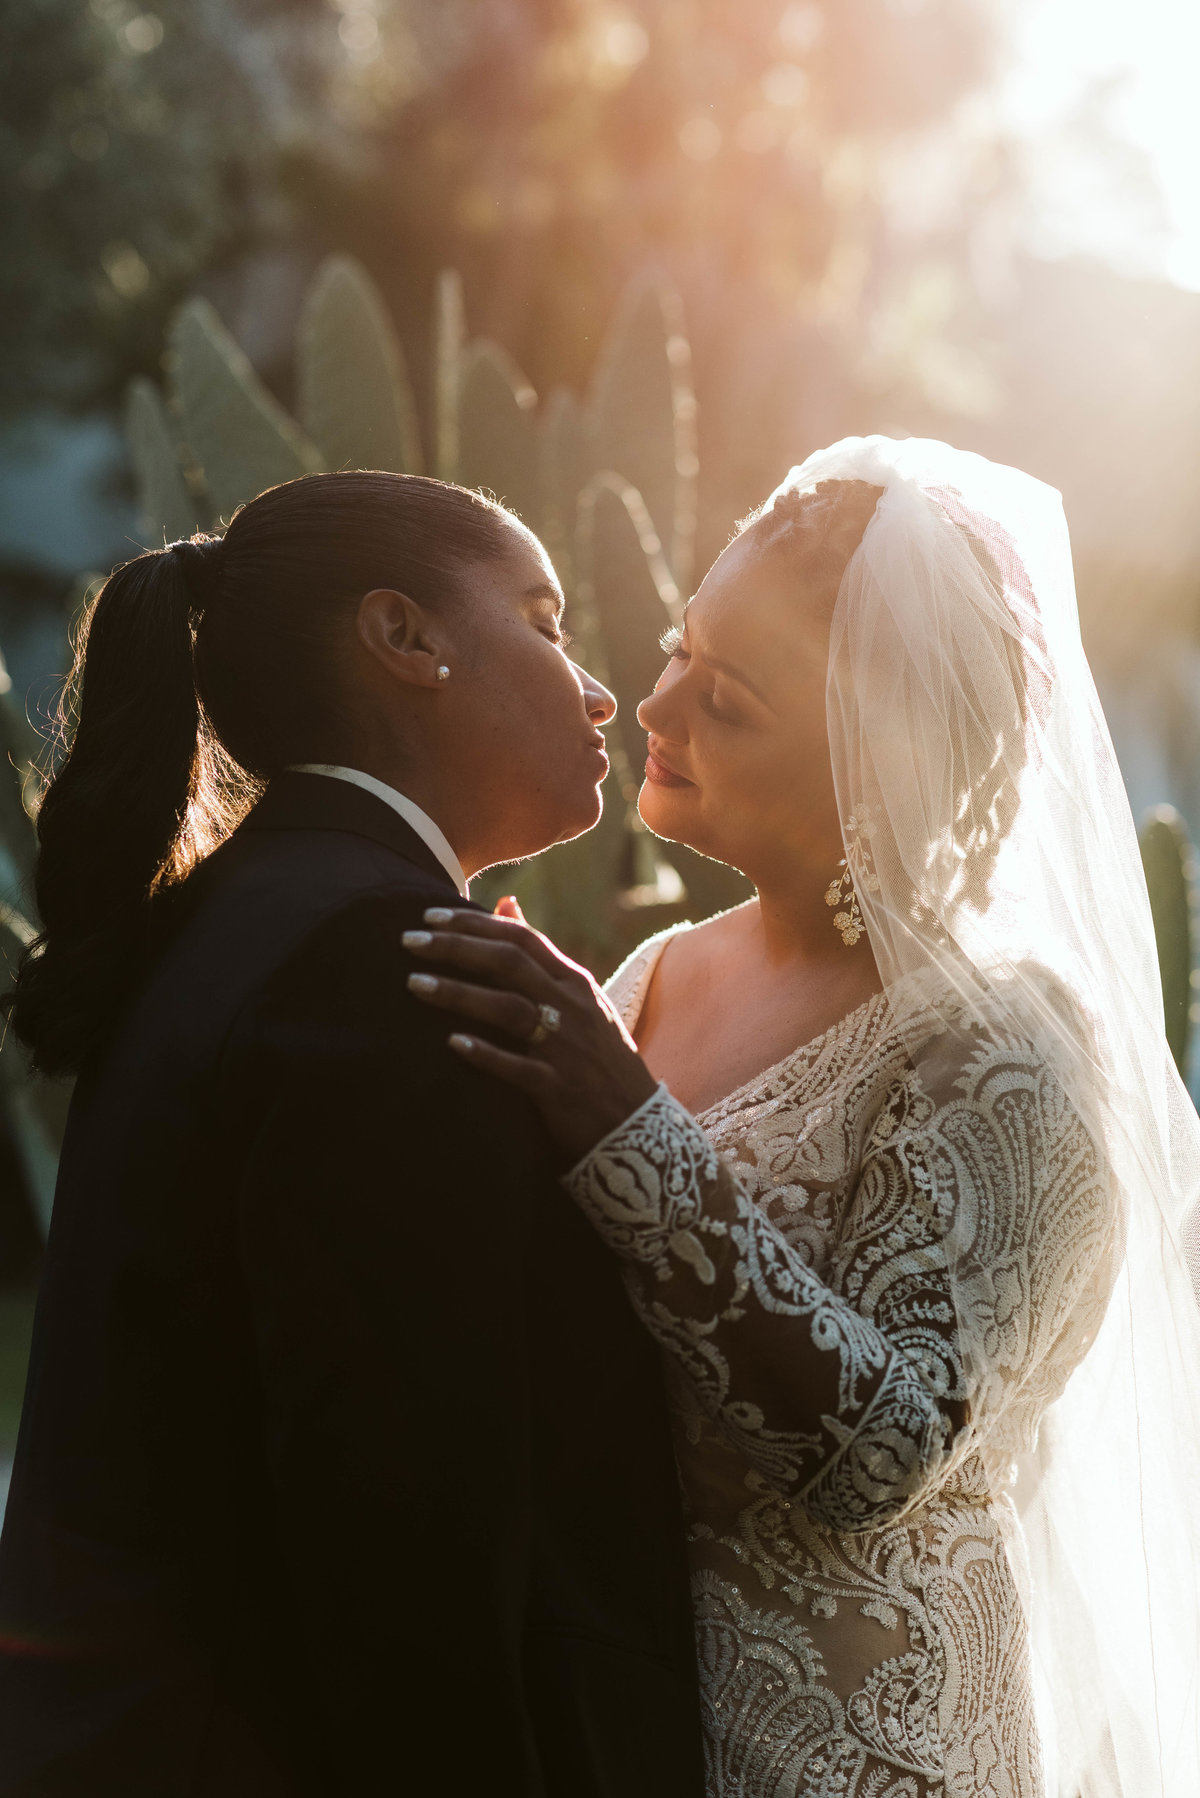 Mo&Steph.Wedding.CristalVeronica2018-2